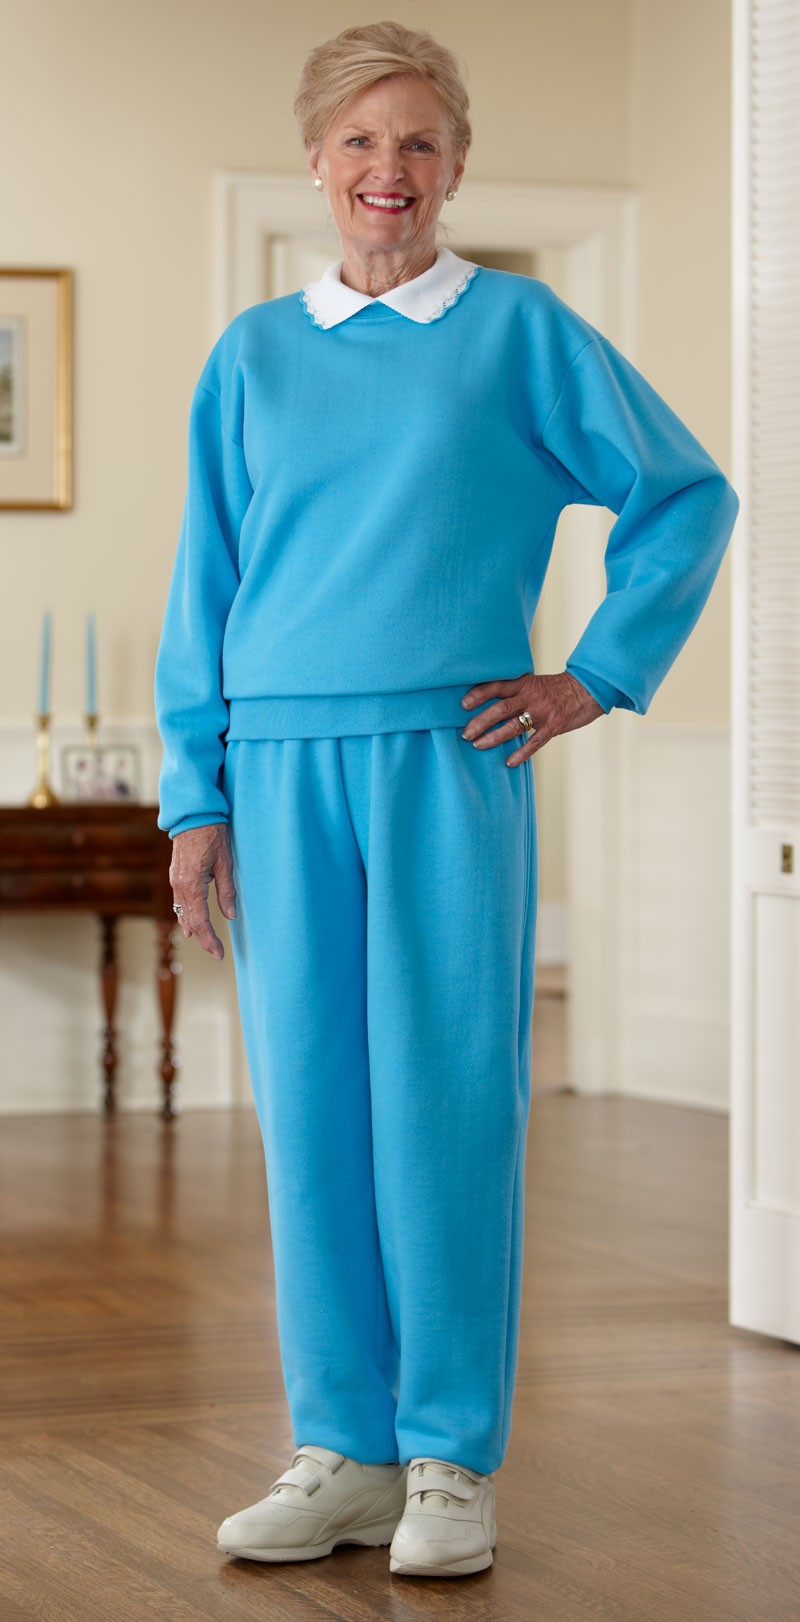 Find great deals on eBay for sweat suits for women. Shop with confidence.